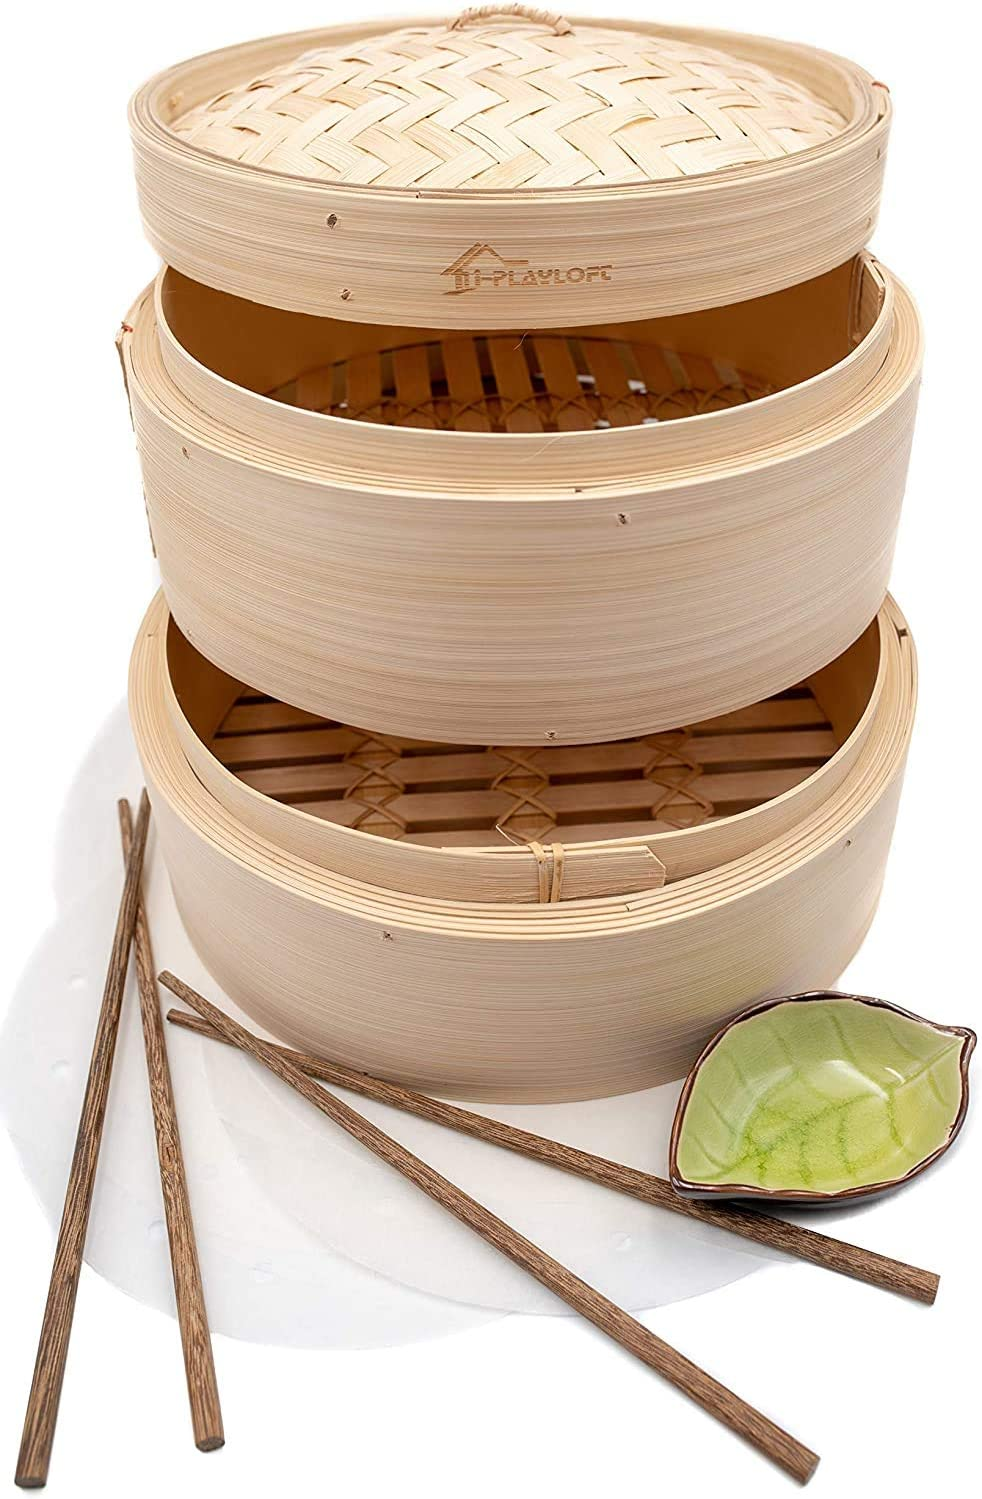 Premium 8 Inch Handmade Bamboo Steamer - Two Tier Baskets - Dim Sum Dumpling & Bao Bun Chinese Food Steamers - Steam Baskets For Rice, Vegetables, Meat & Fish Included 2 Sets Chopsticks, 20 Liners & Sauce Dish